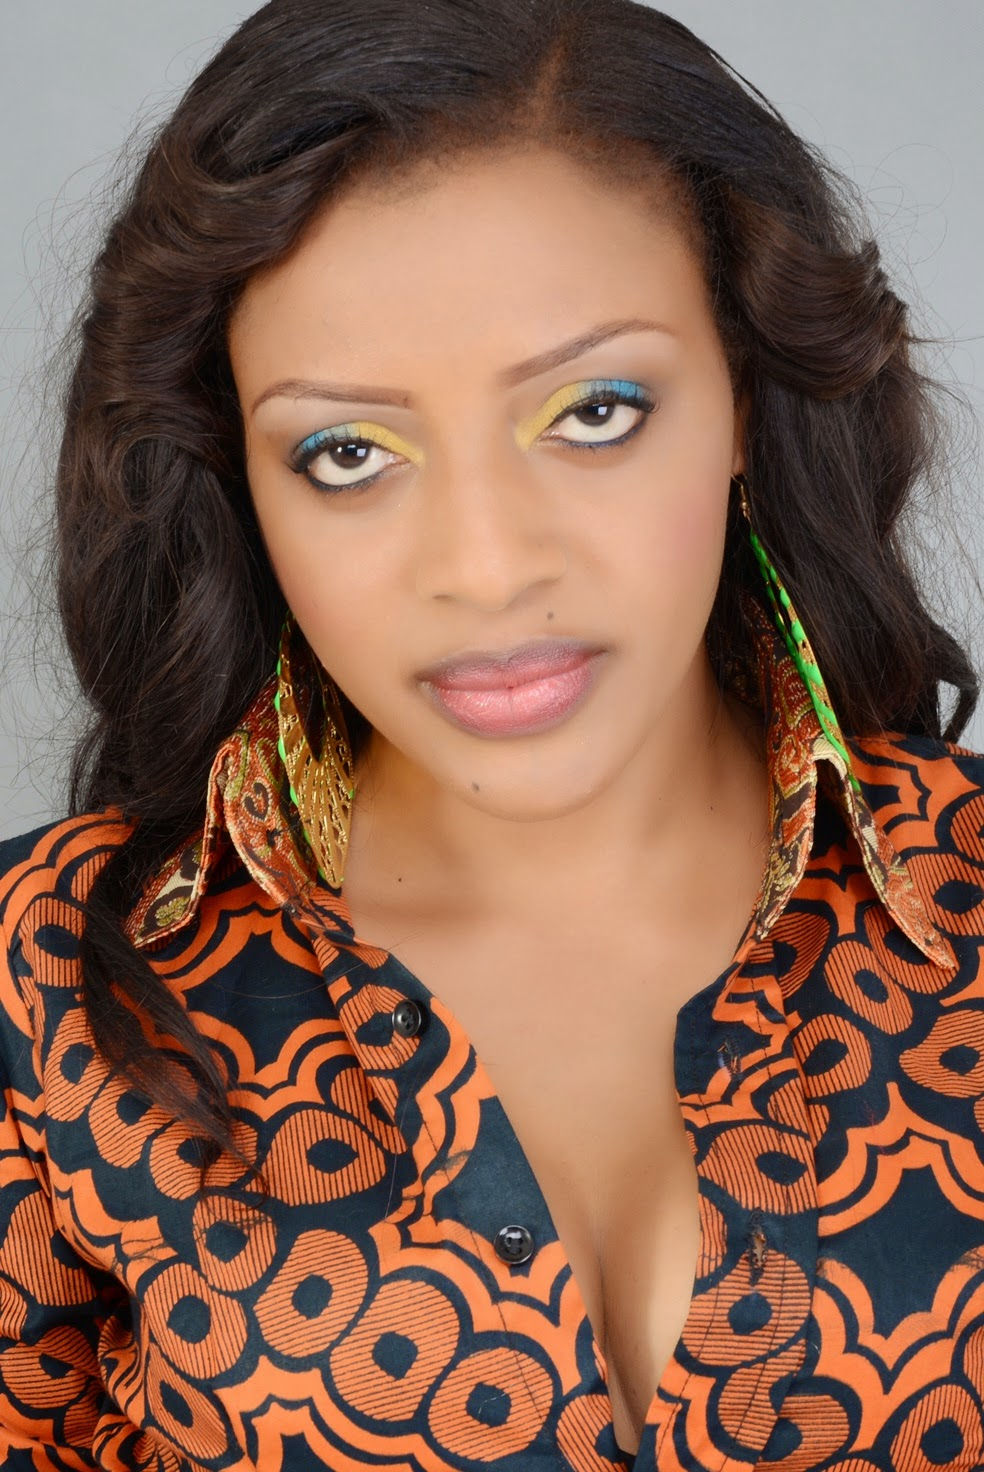 ANGEL UFUOMA LANDS LEAD ROLE IN SUPER STAR NIGERIAN INTERNATIONAL MUSIC FILM - By Tony Ogaga